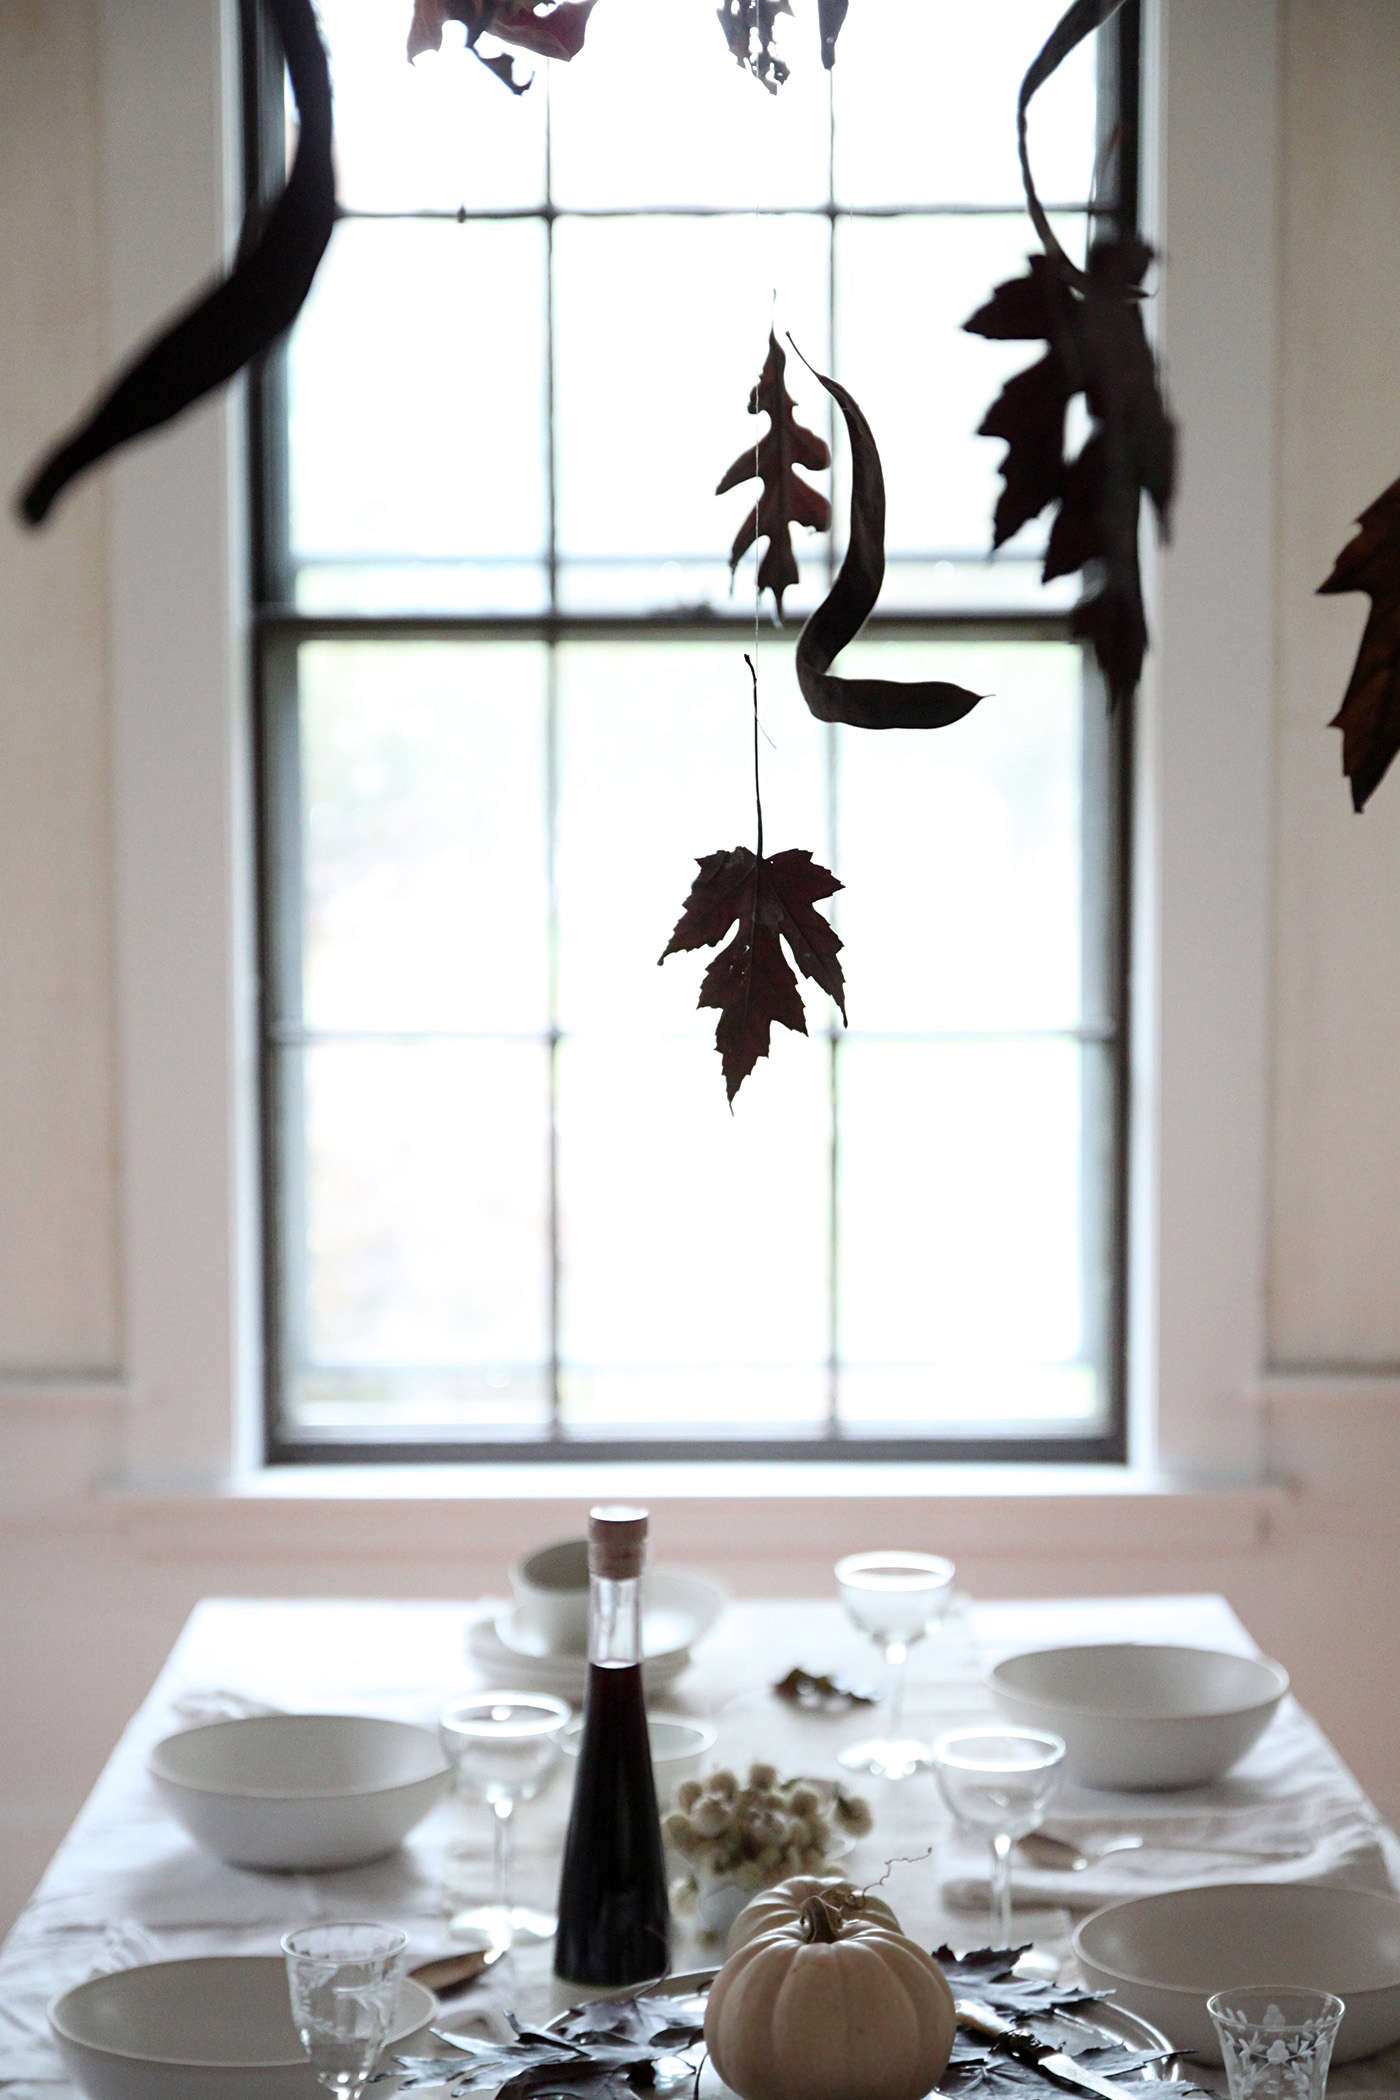 Halloween%20table%20with%20Black%20Leaves%2C%20leaf%20silhouettes%2C%20by%20Justine%20Hand%20for%20Remodelista